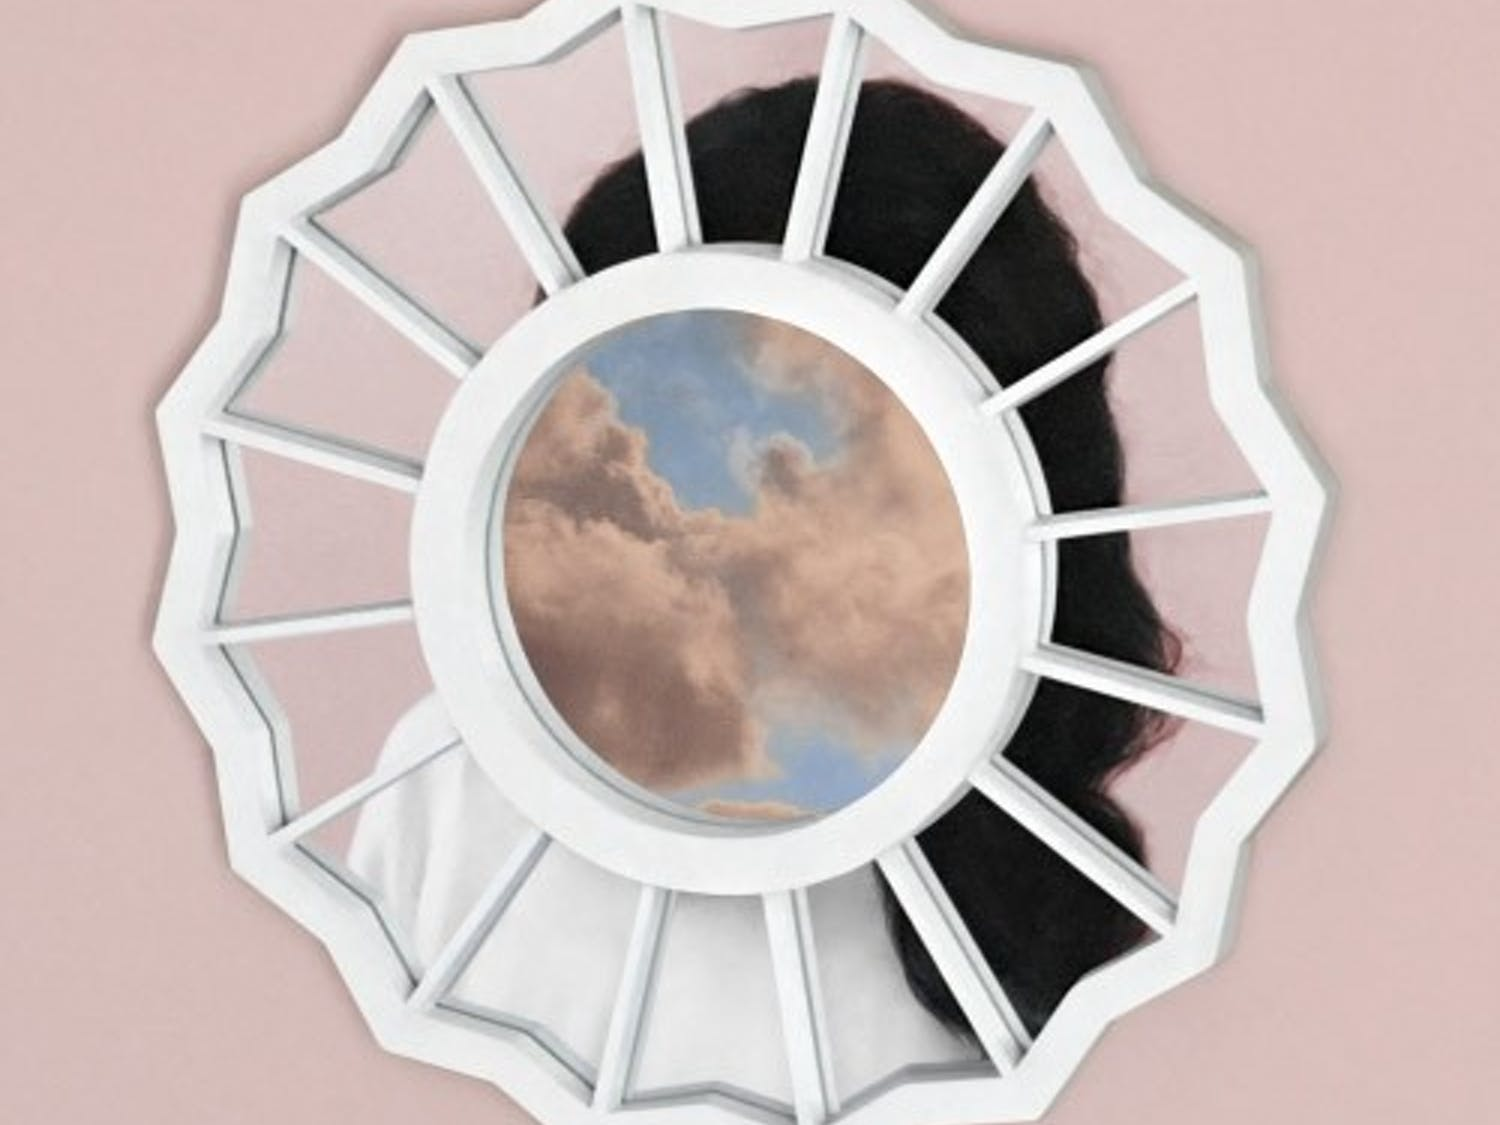 Mac Miller continues to create entertaining workwith his recent release of the LP turned album The Divine Feminine.